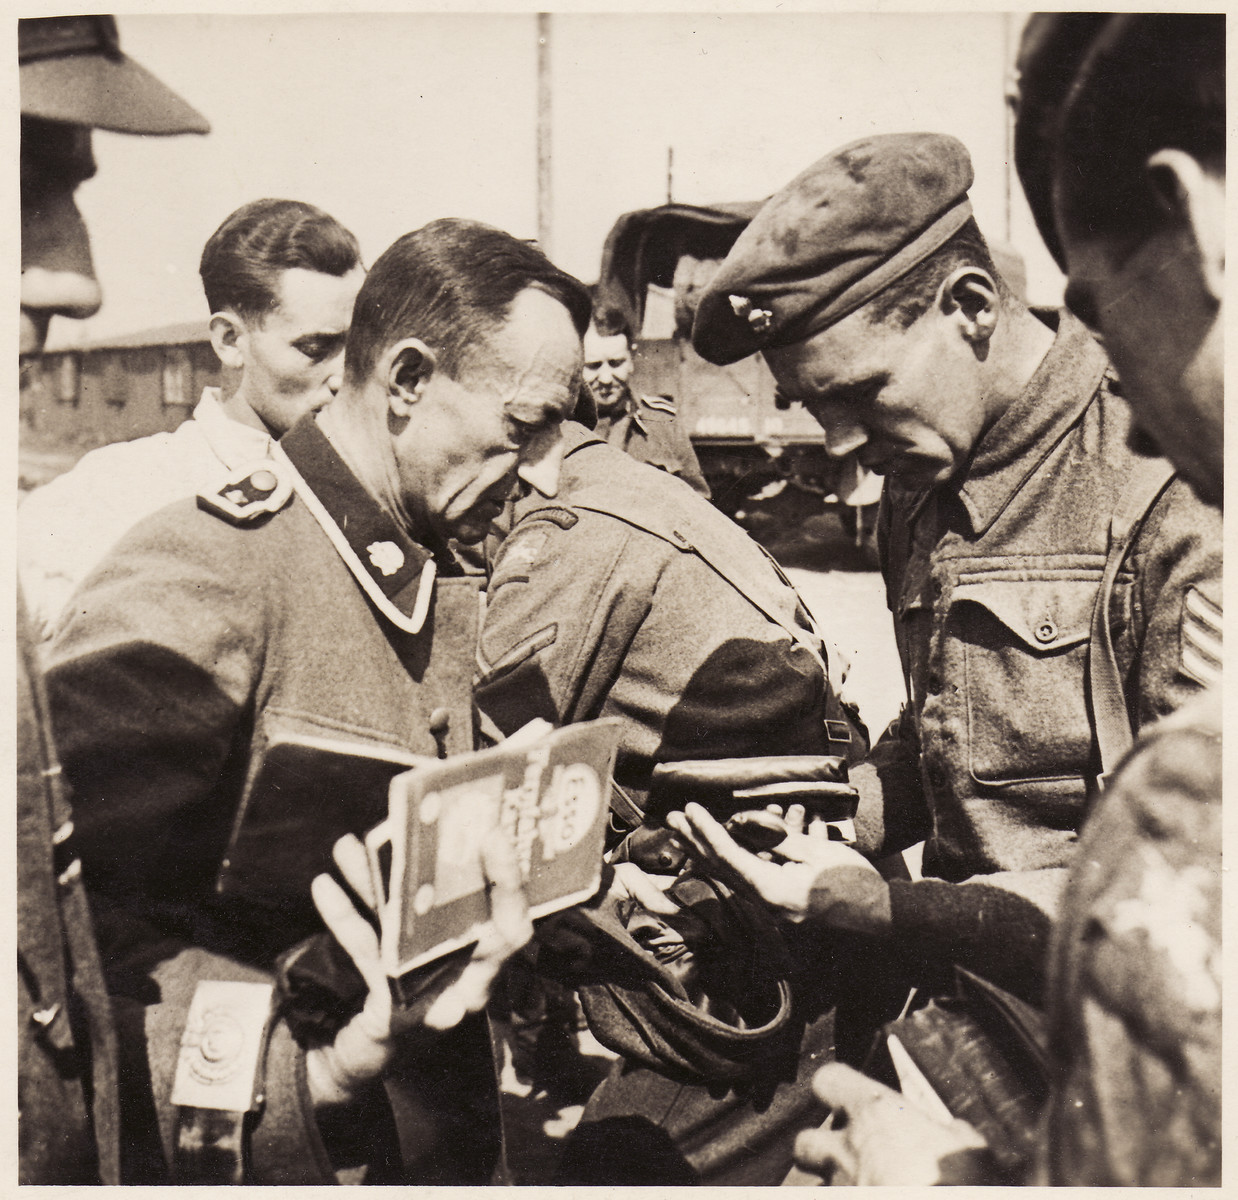 British soldiers inspect the documents of former SS guards at Bergen-Belsen concentration camp.